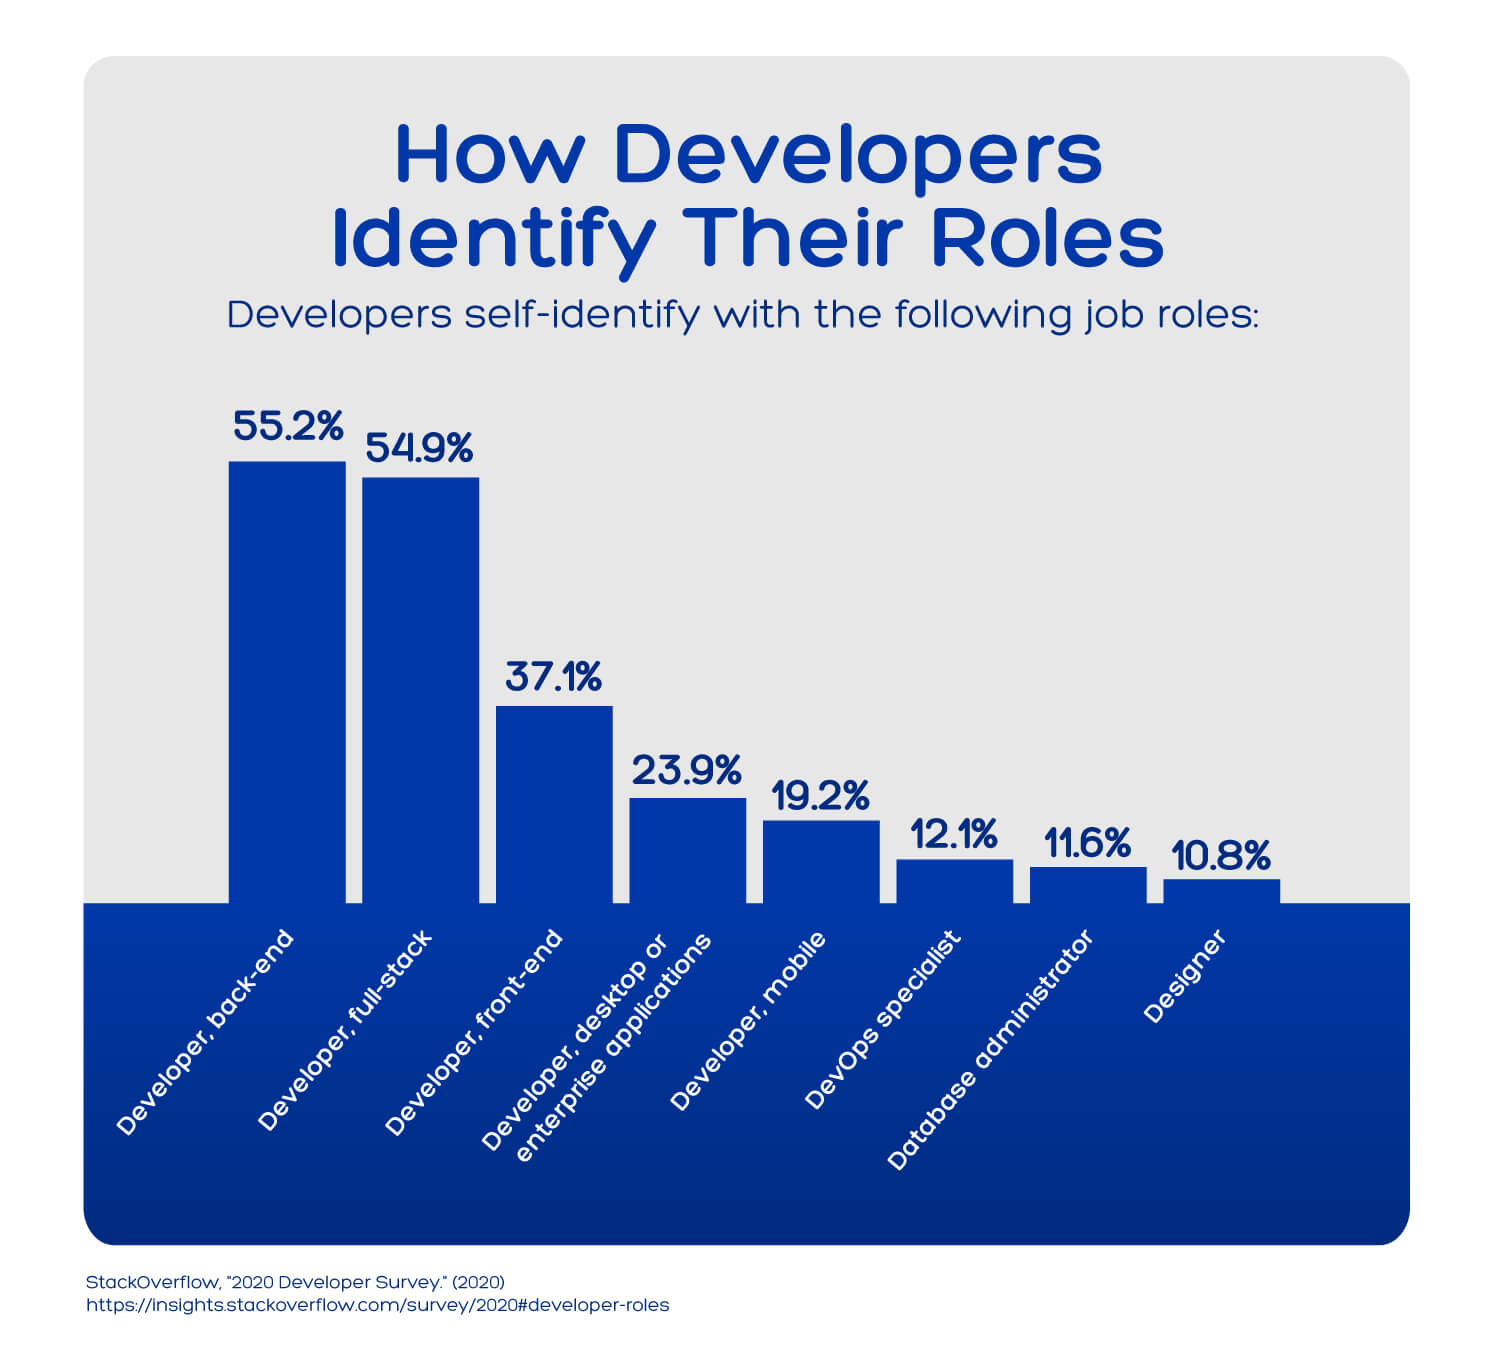 Chart showing the percentage of developers who identify as full stack developers